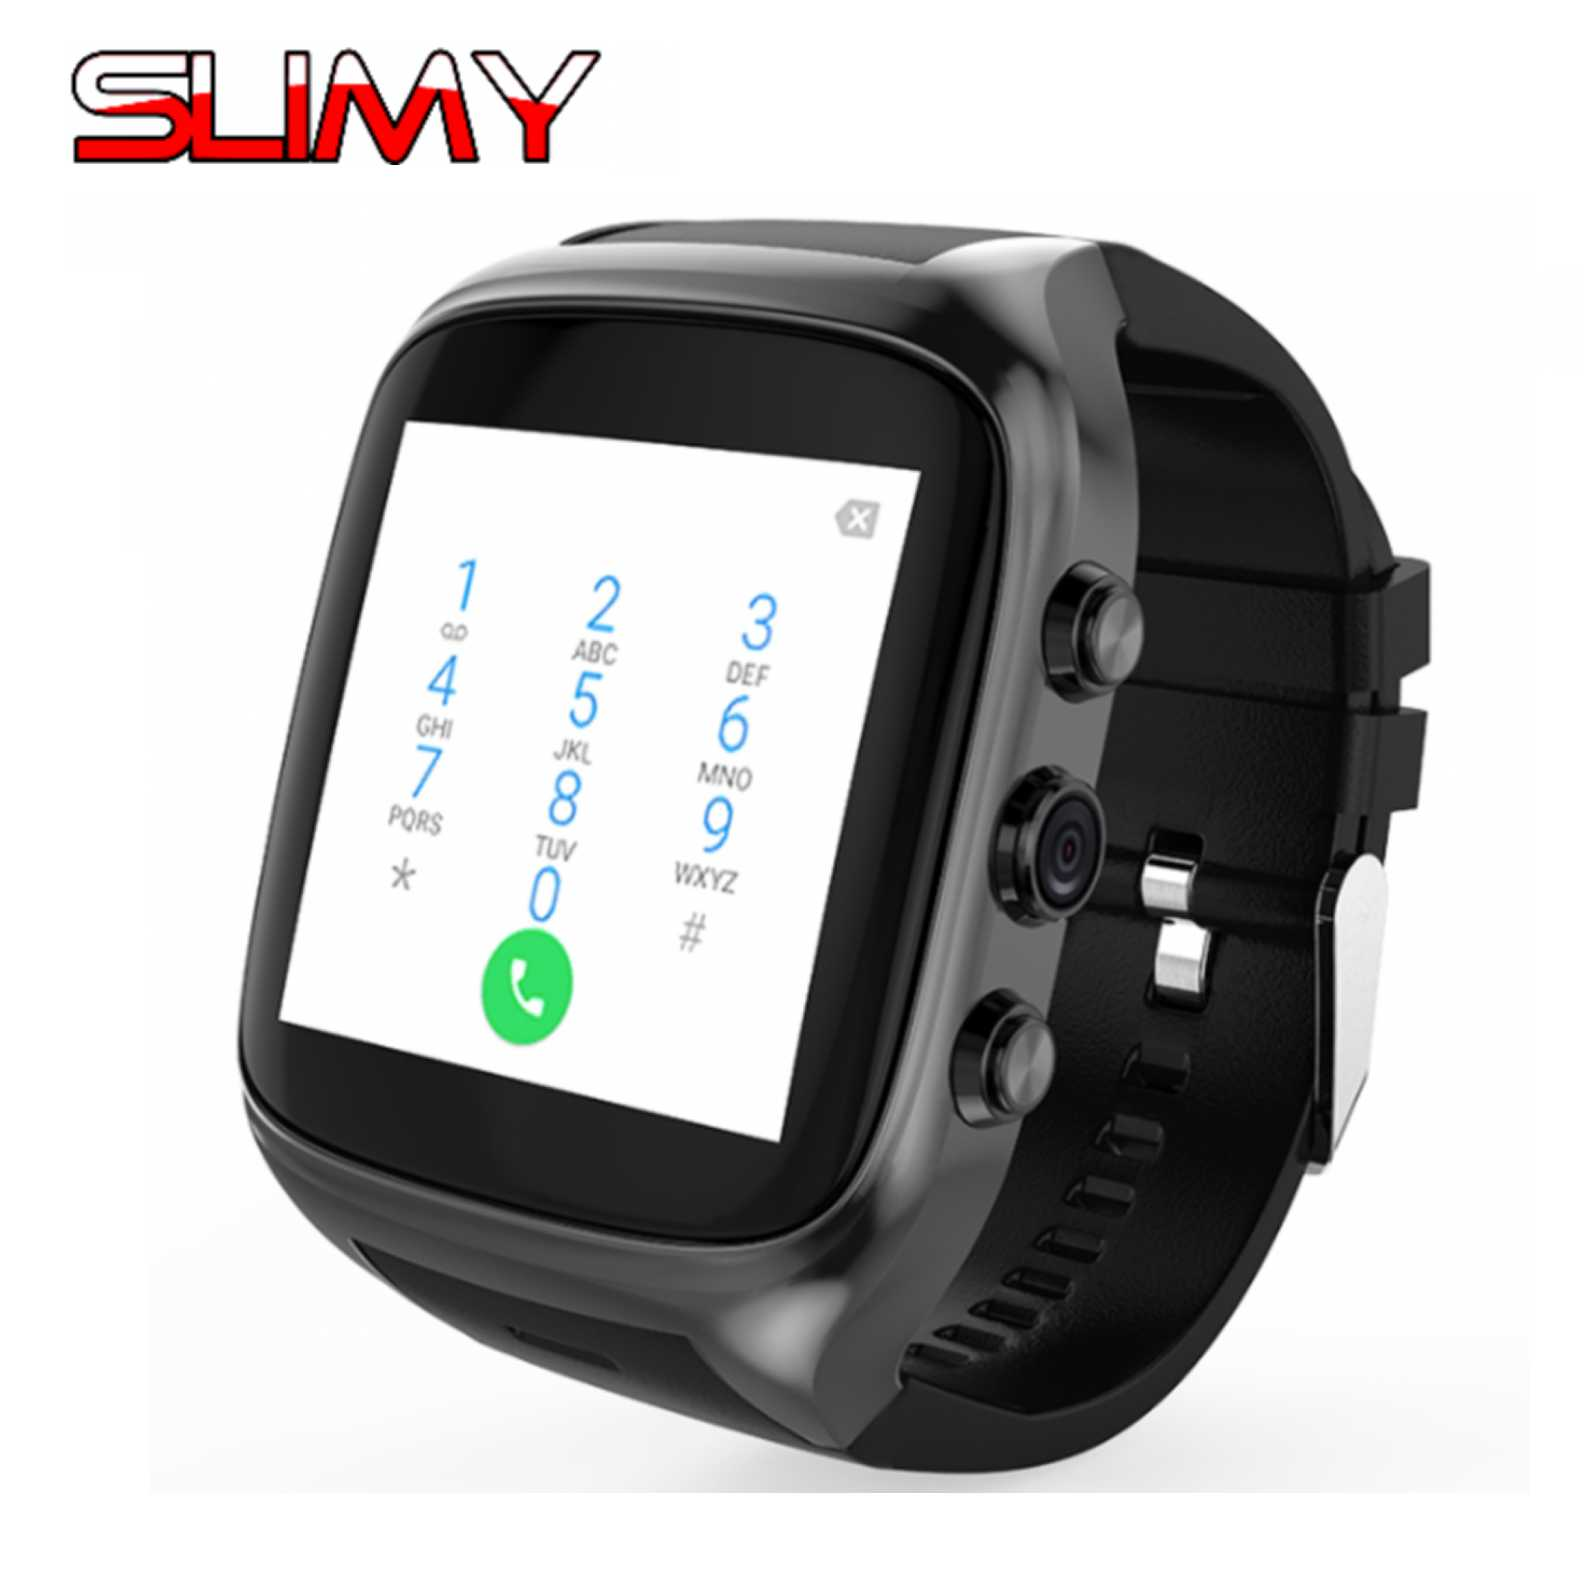 Slimy X02S Android 5.1 Smart Watch Smartwatch Wristwatch MTK6580 8G ROM 512 RAM 3G SIM WiFi Sport Fitness 2MP Camera GPS Watch ip68 waterproof android gps smart watch smartwatch wristwatch 3g sim wifi sport fitness 5mp camera h1 steel strap smart watch